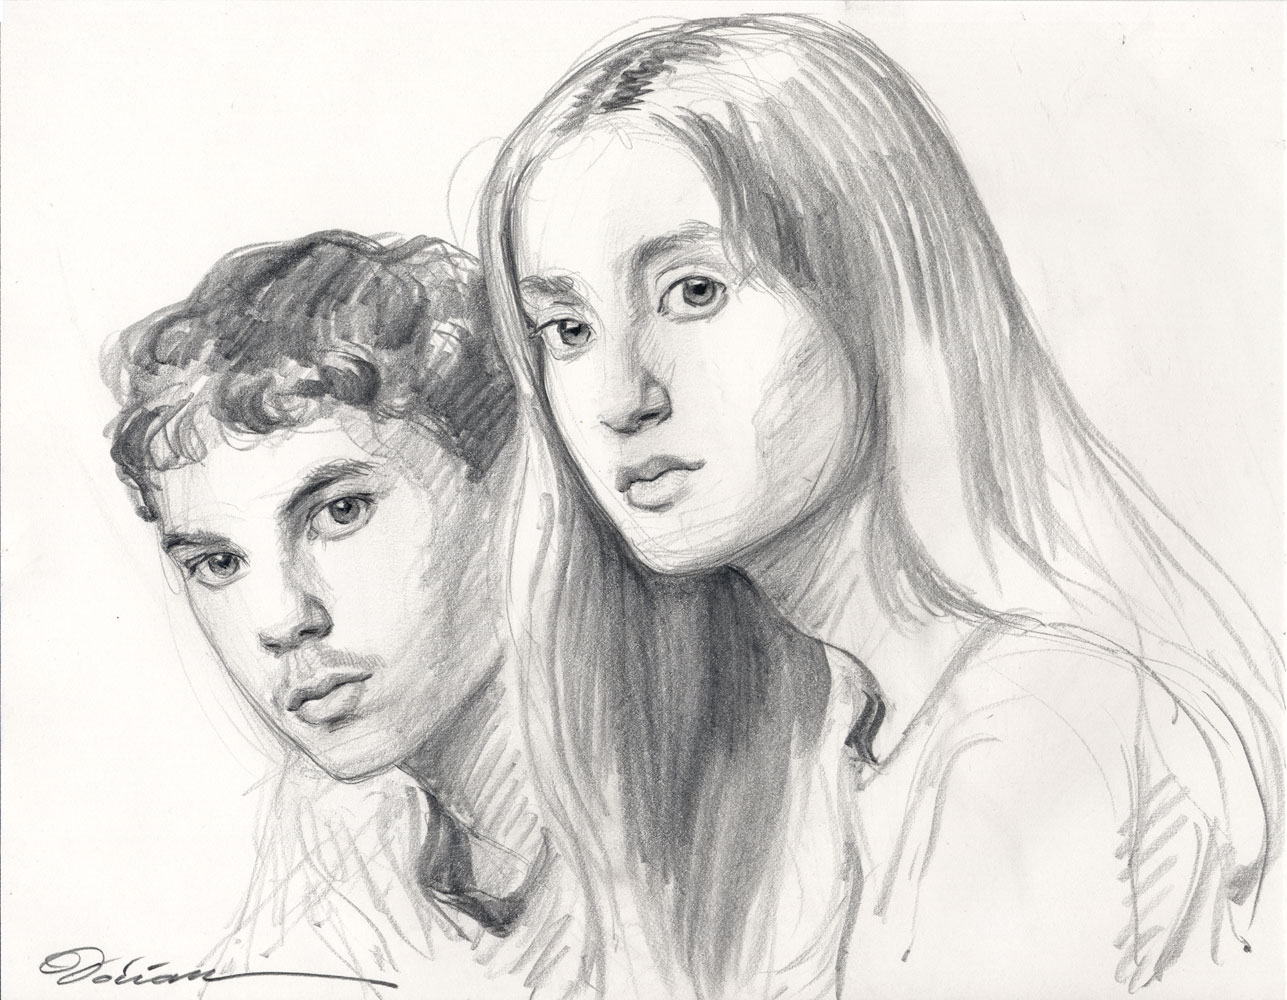 Pencil_Sketches_36.jpg